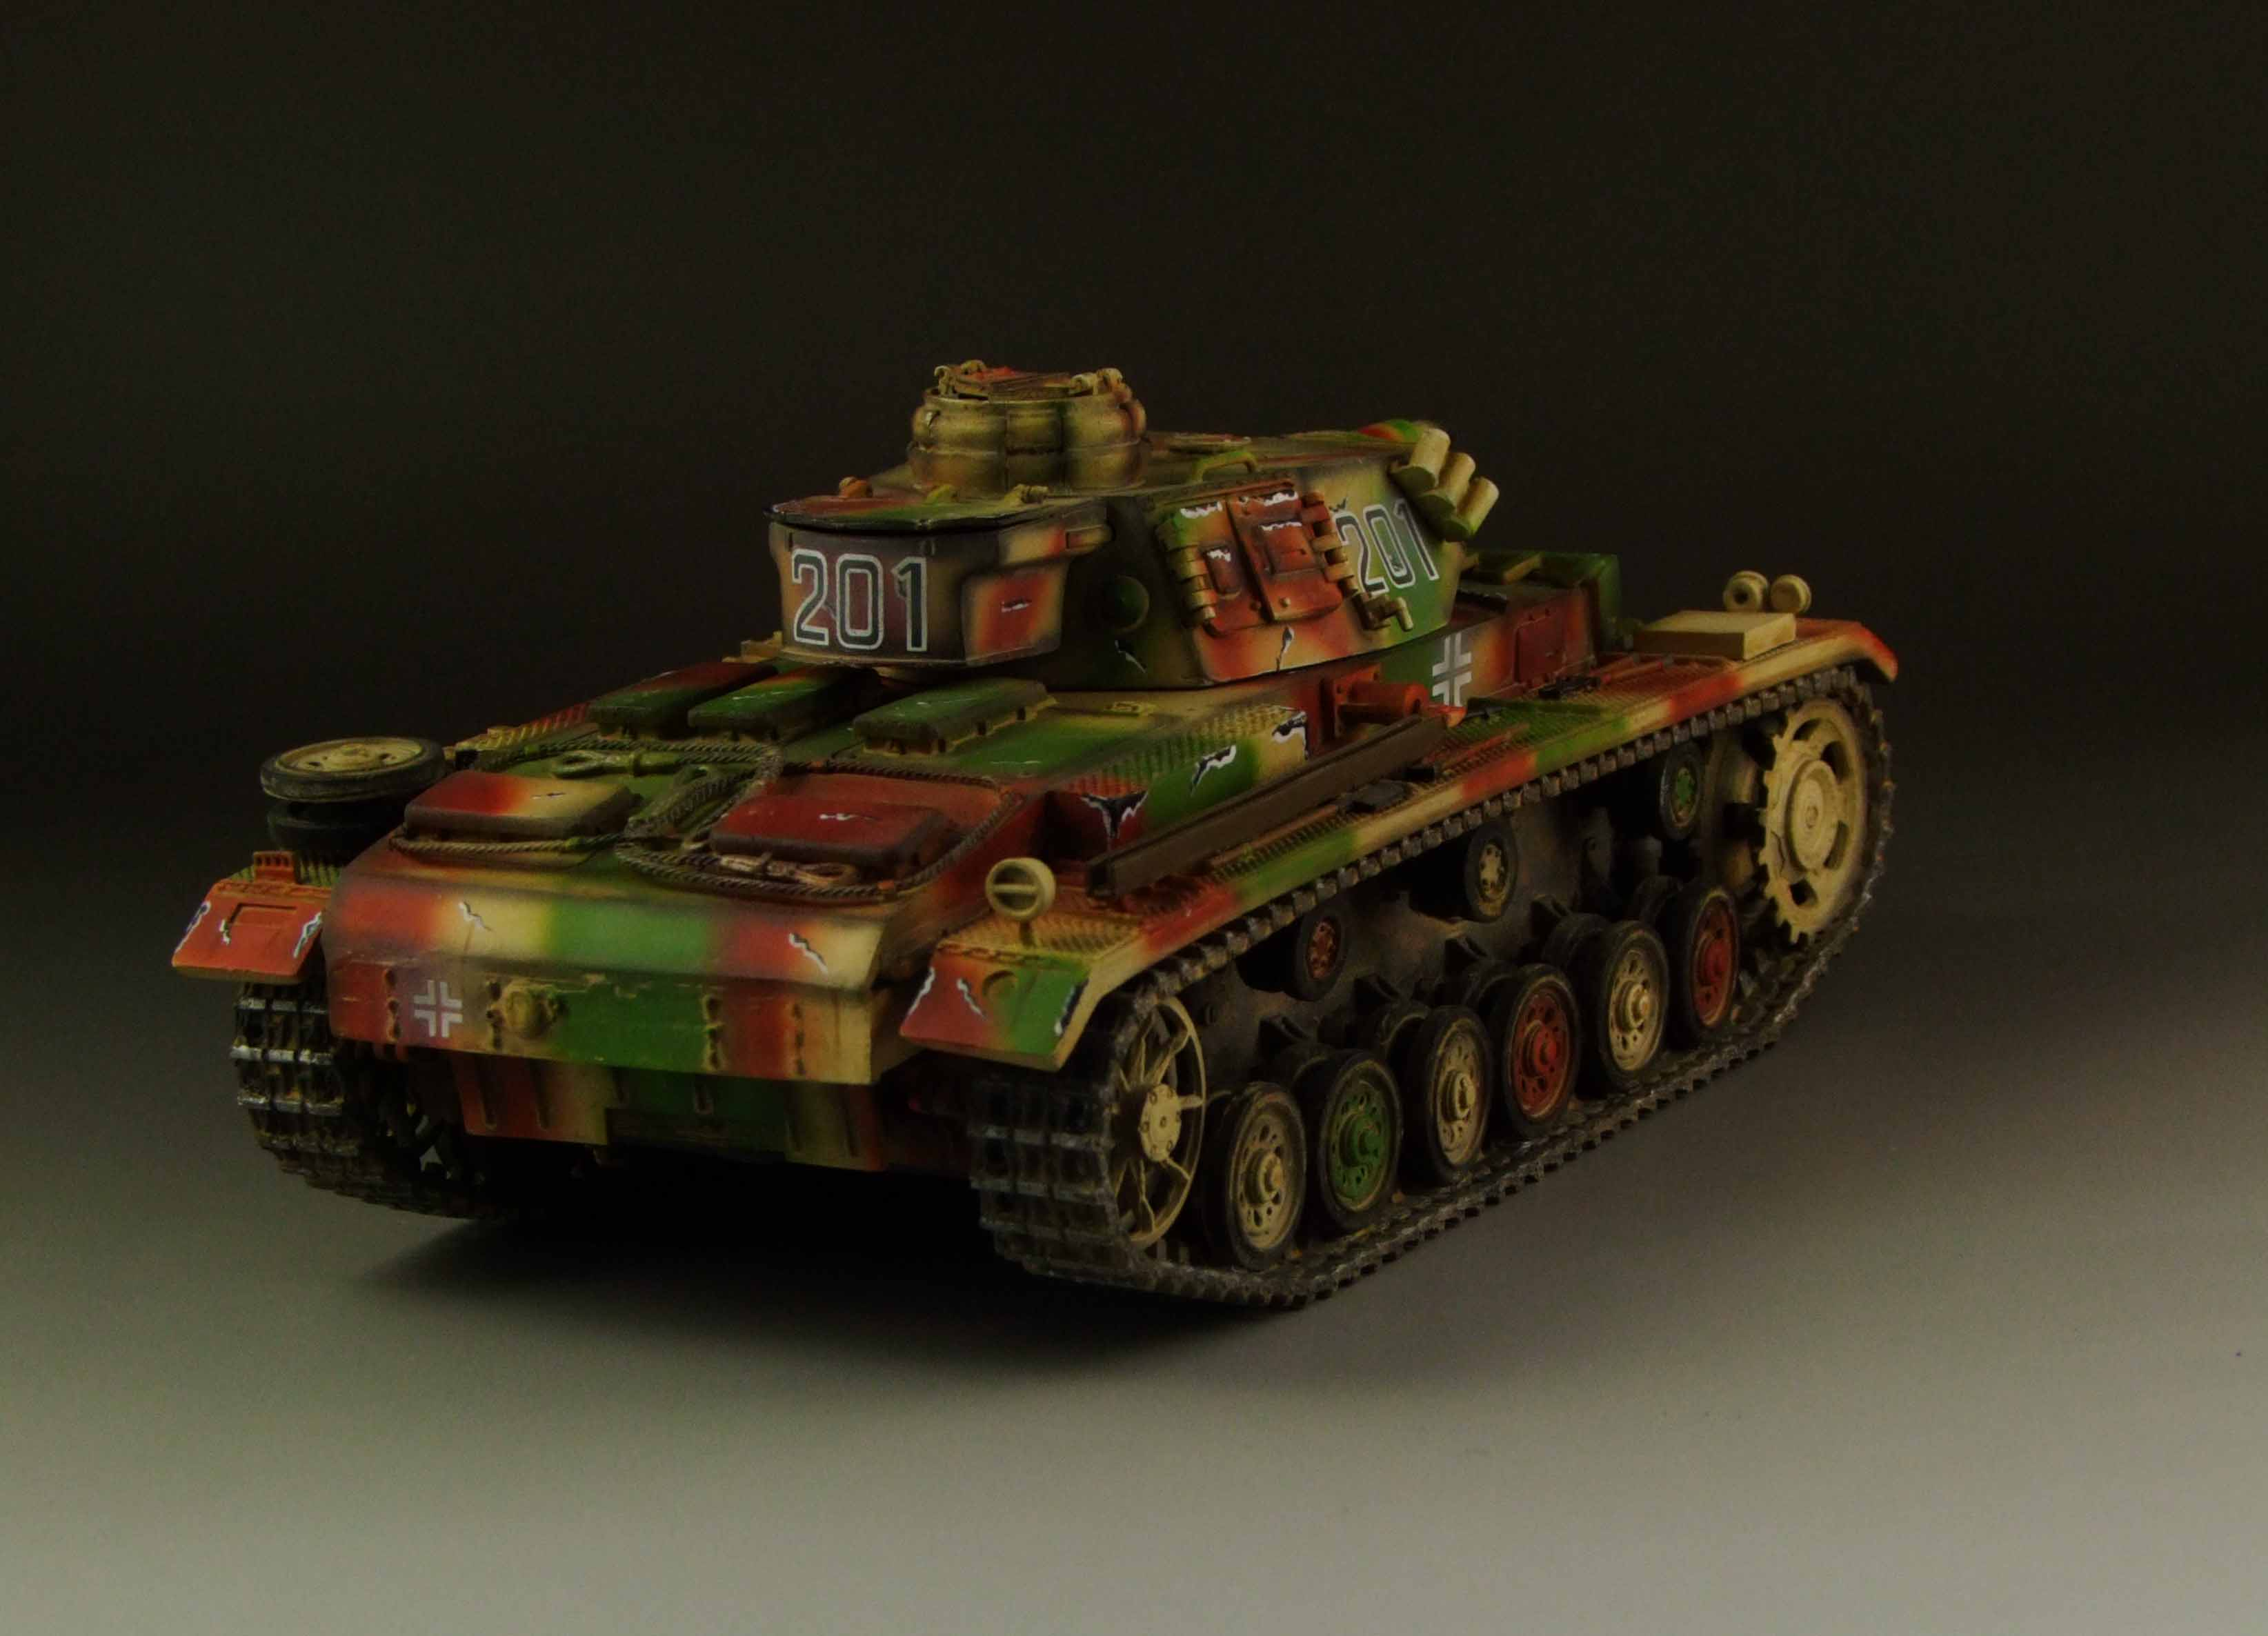 Panzer III Ausf L tri-color camouflage